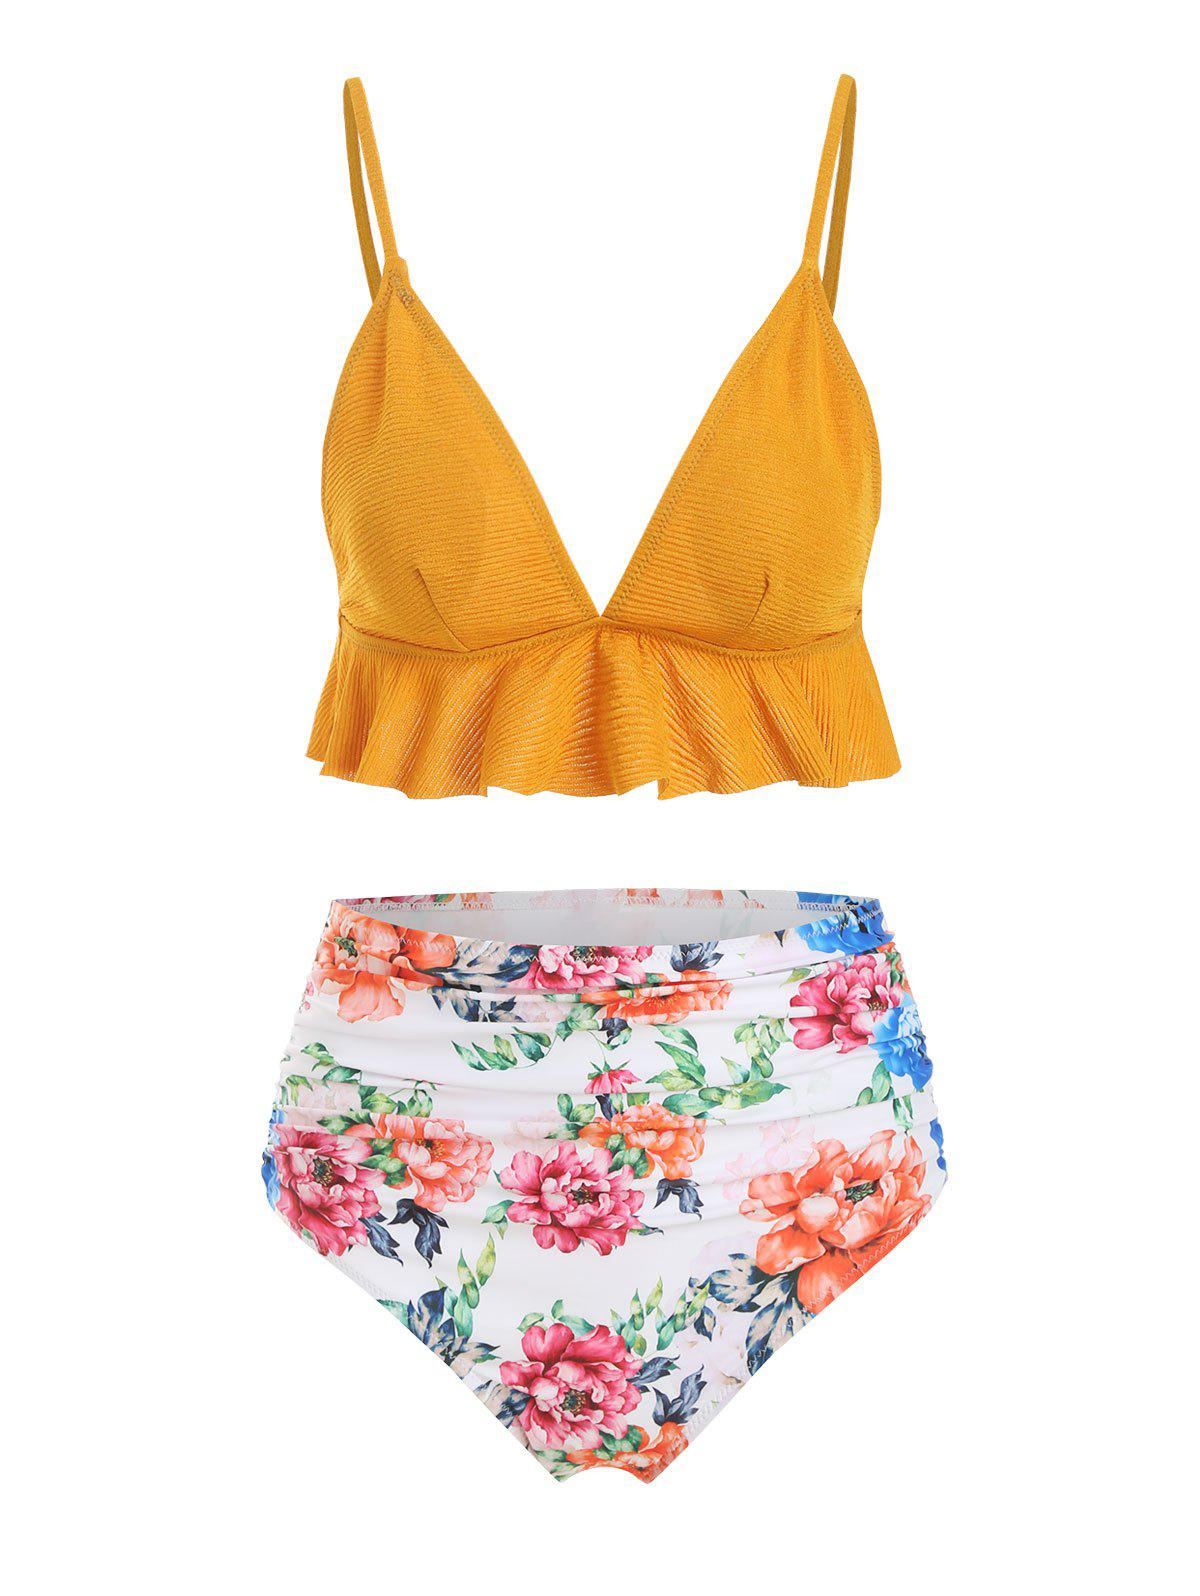 Crinkly Flounce Ruched Floral Bikini Swimsuit - GOLDEN BROWN L